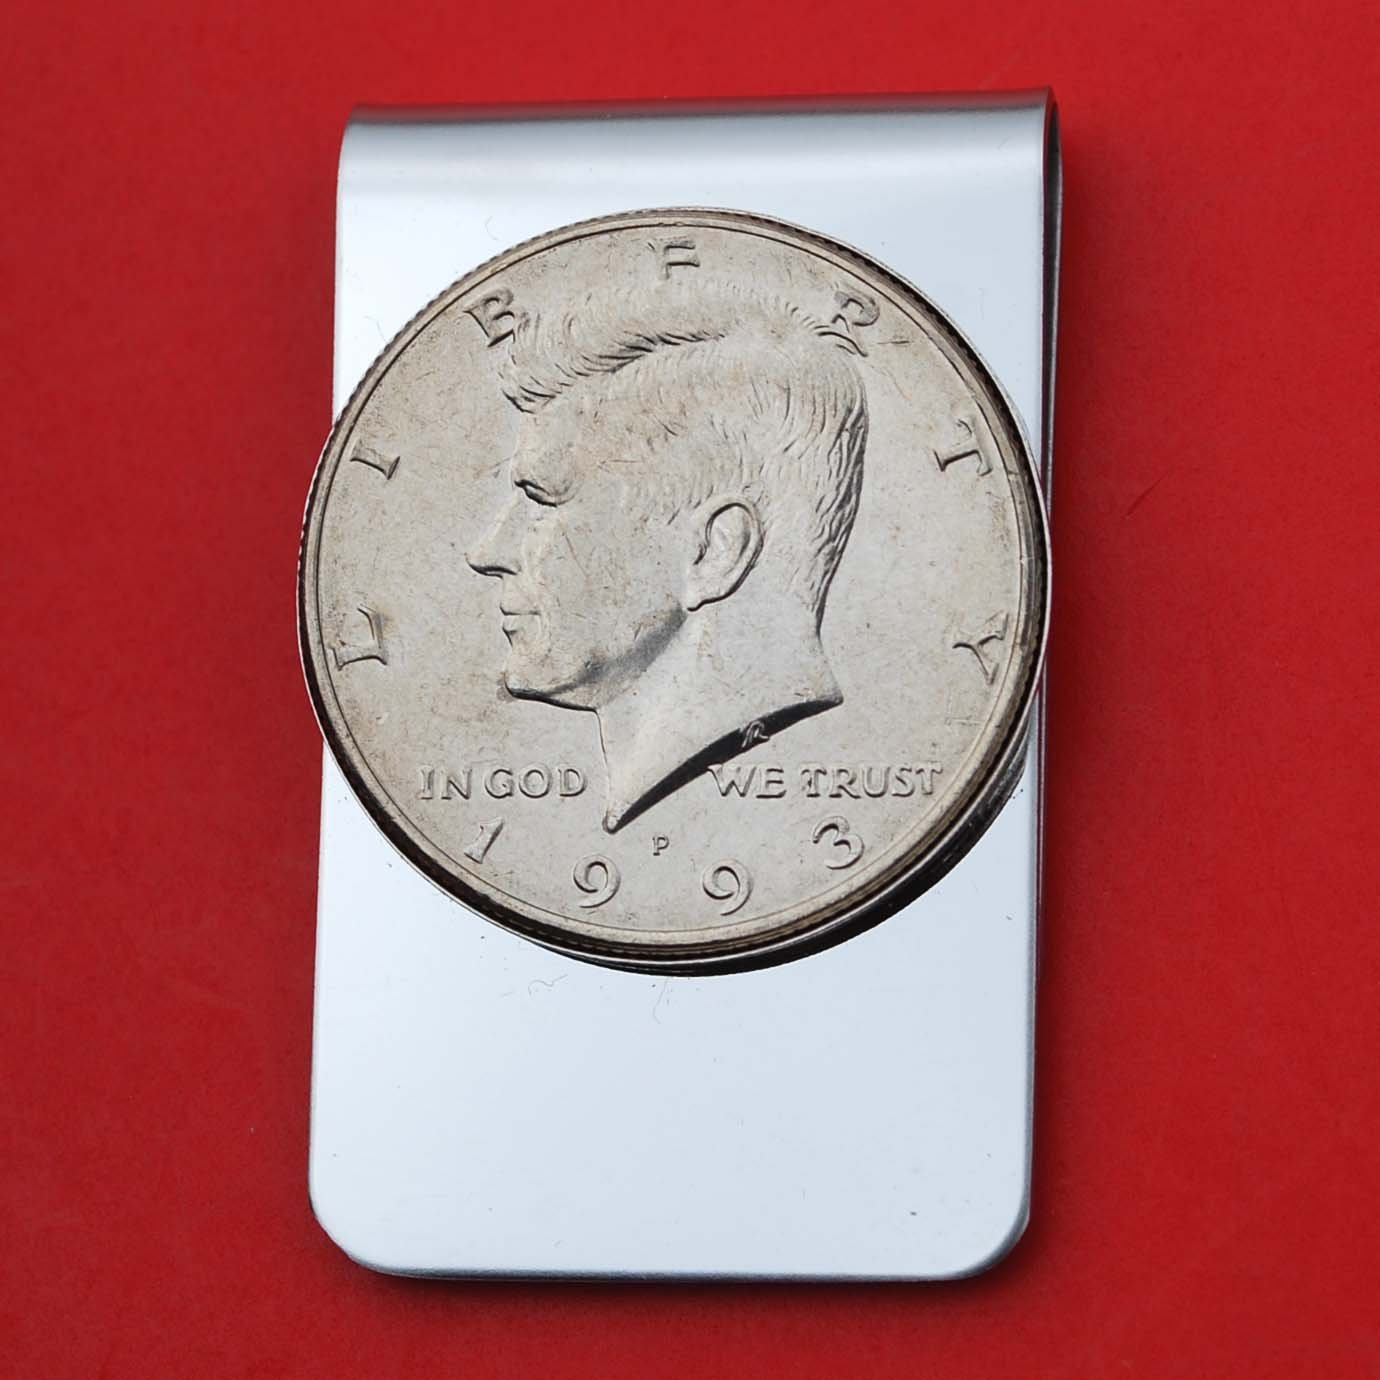 US 1993 Kennedy Half Dollar BU Uncirculated Coin Stainless Steel Money Clip NEW - Silver Plated Coin Bezel